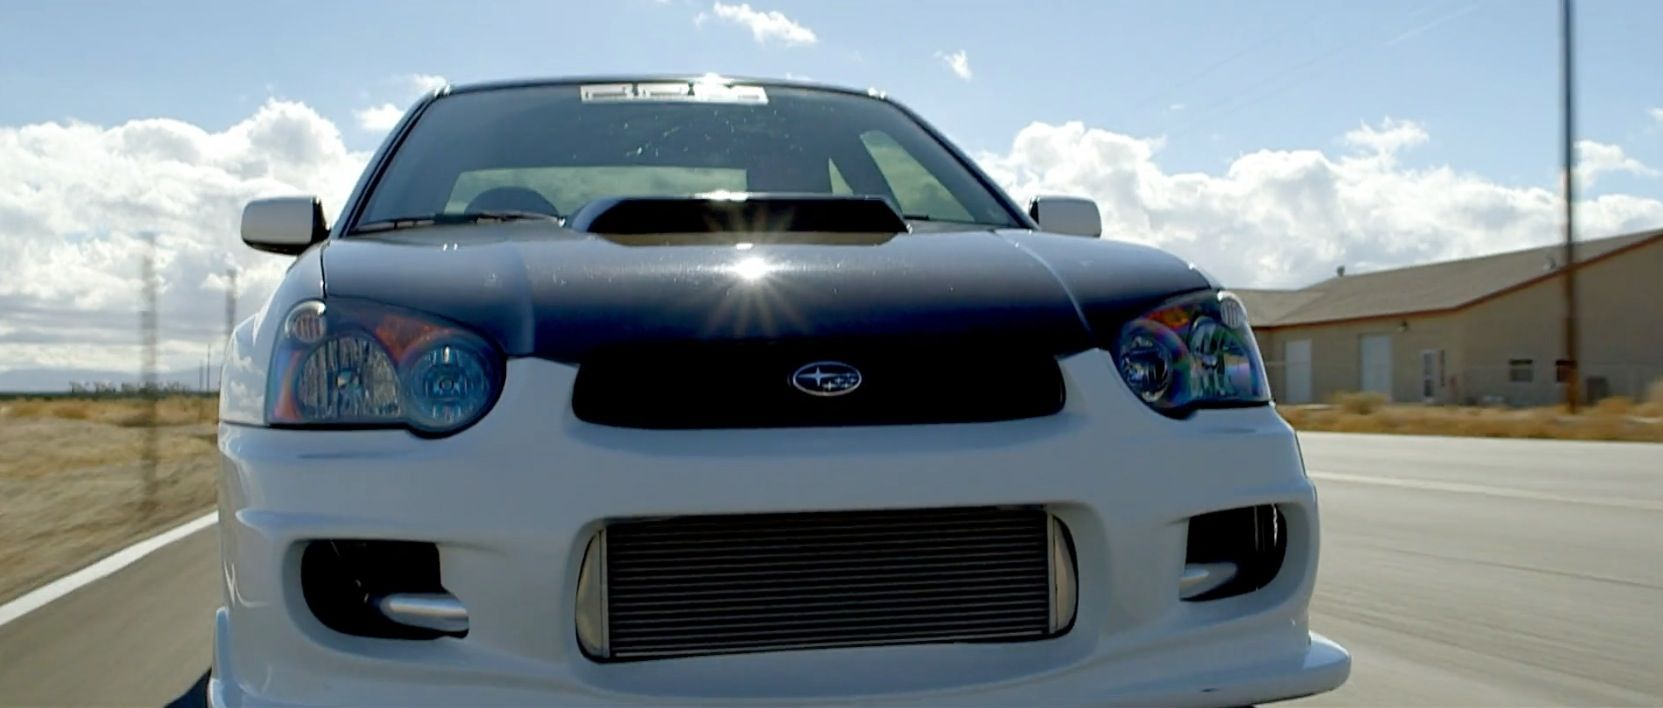 Subaru Impreza Wrx Sti Car In Born To Race Fast Track